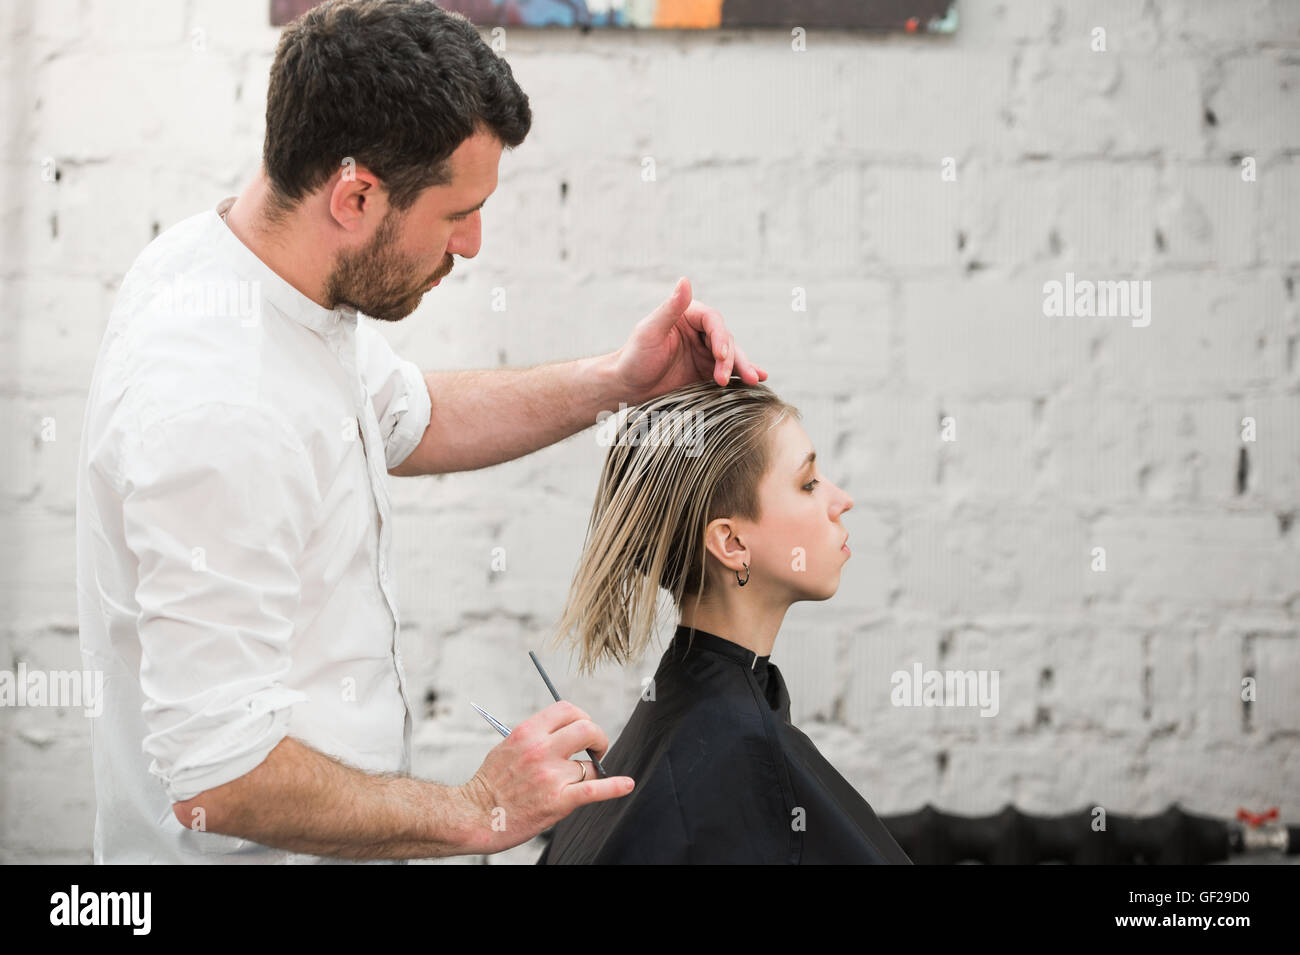 hairdresser cuts hair with scissors on crown of handsome satisfied client in professional hairdressing salon - Stock Image